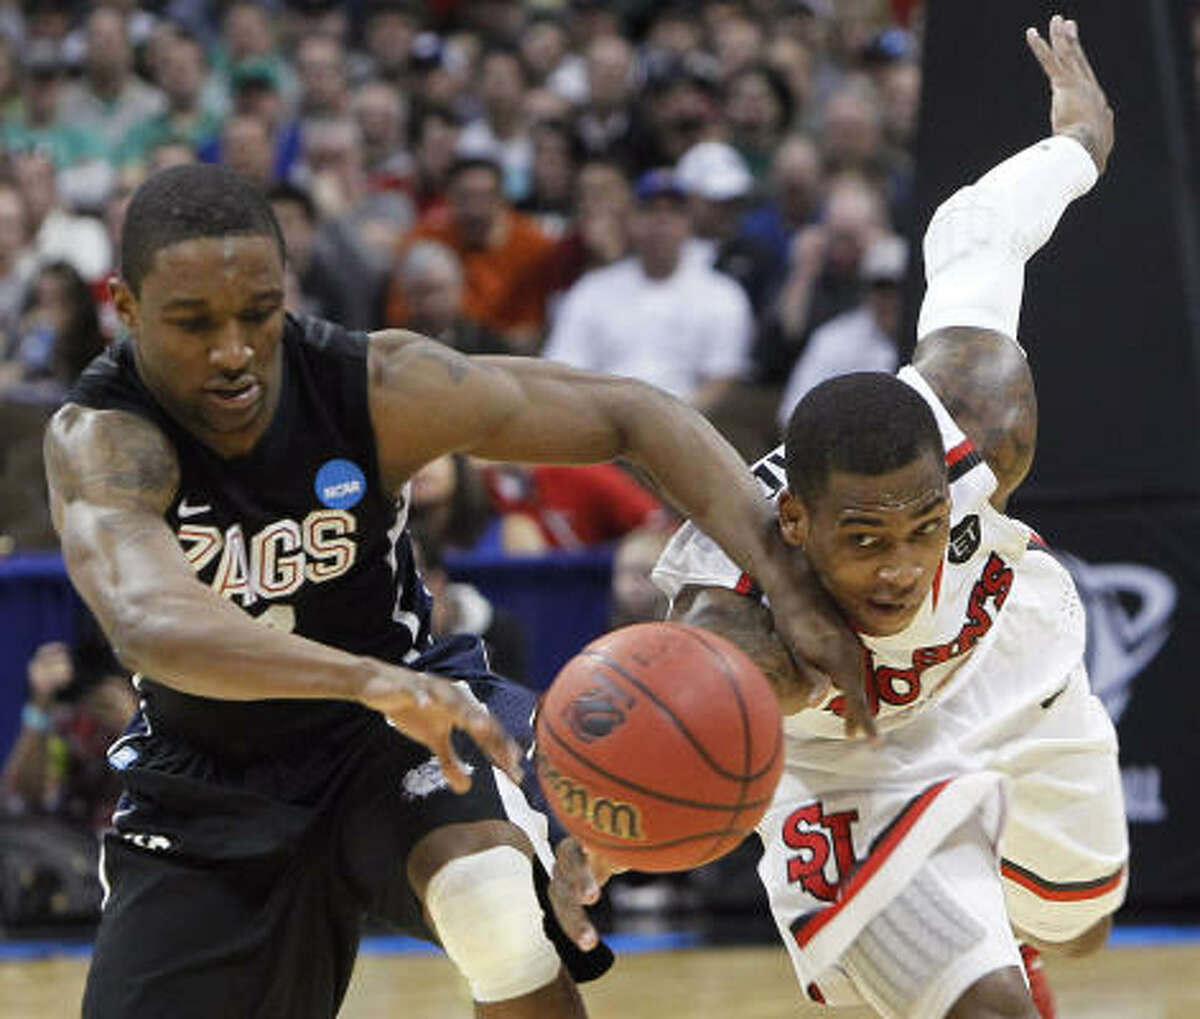 St. John's guard Dwight Hardy, right, strips the ball from Gonzaga guard Demetri Goodson in the second half.